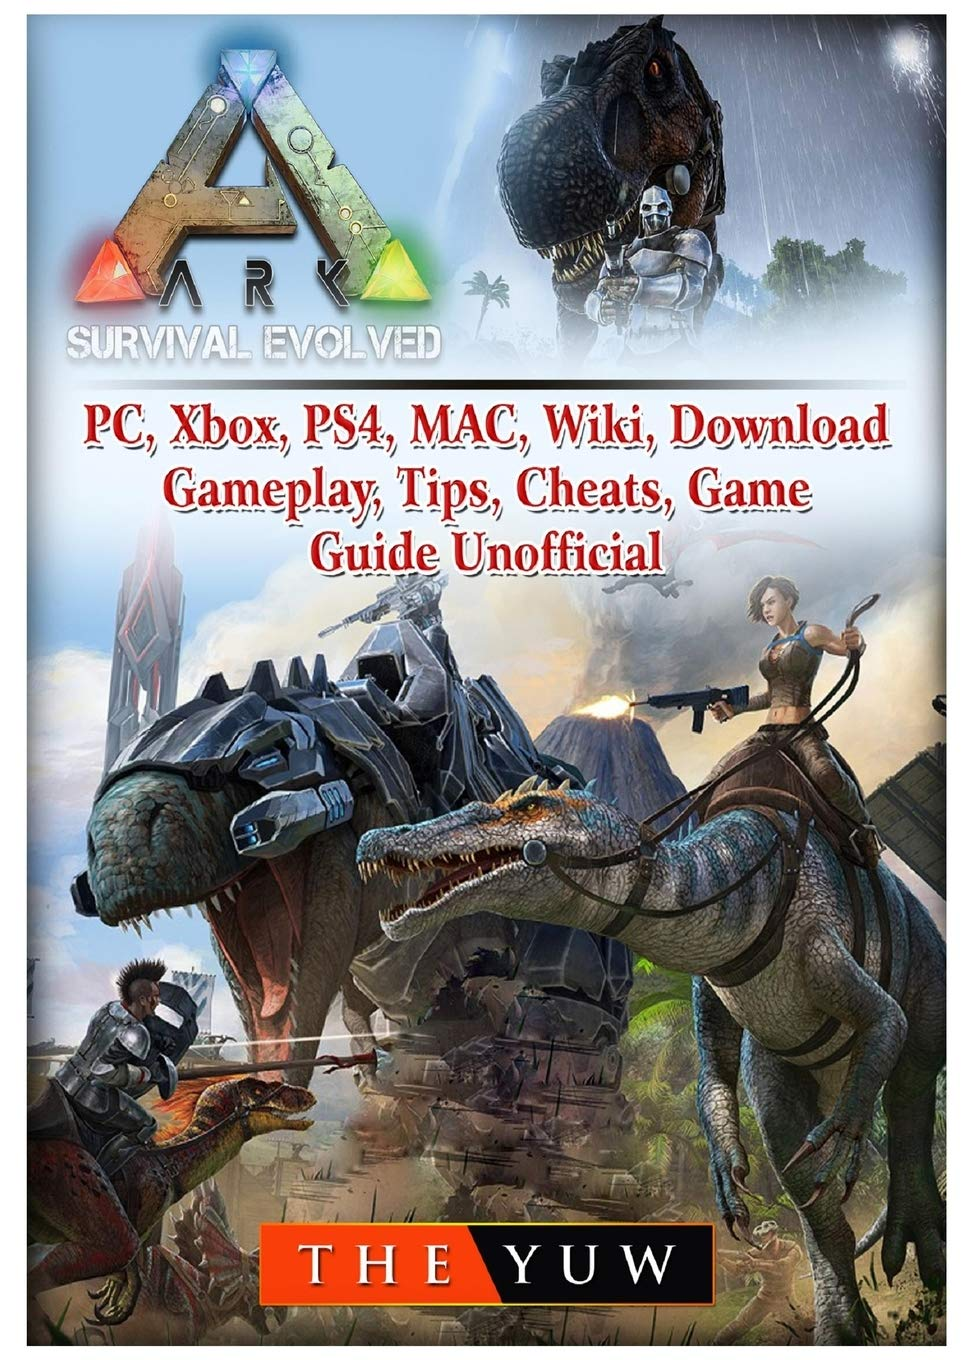 Ark Survival Evolved Pc Xbox Ps4 Mac Wiki Download Gameplay Tips Cheats Game Guide Unofficial Yuw The 9781717213044 Amazon Com Books